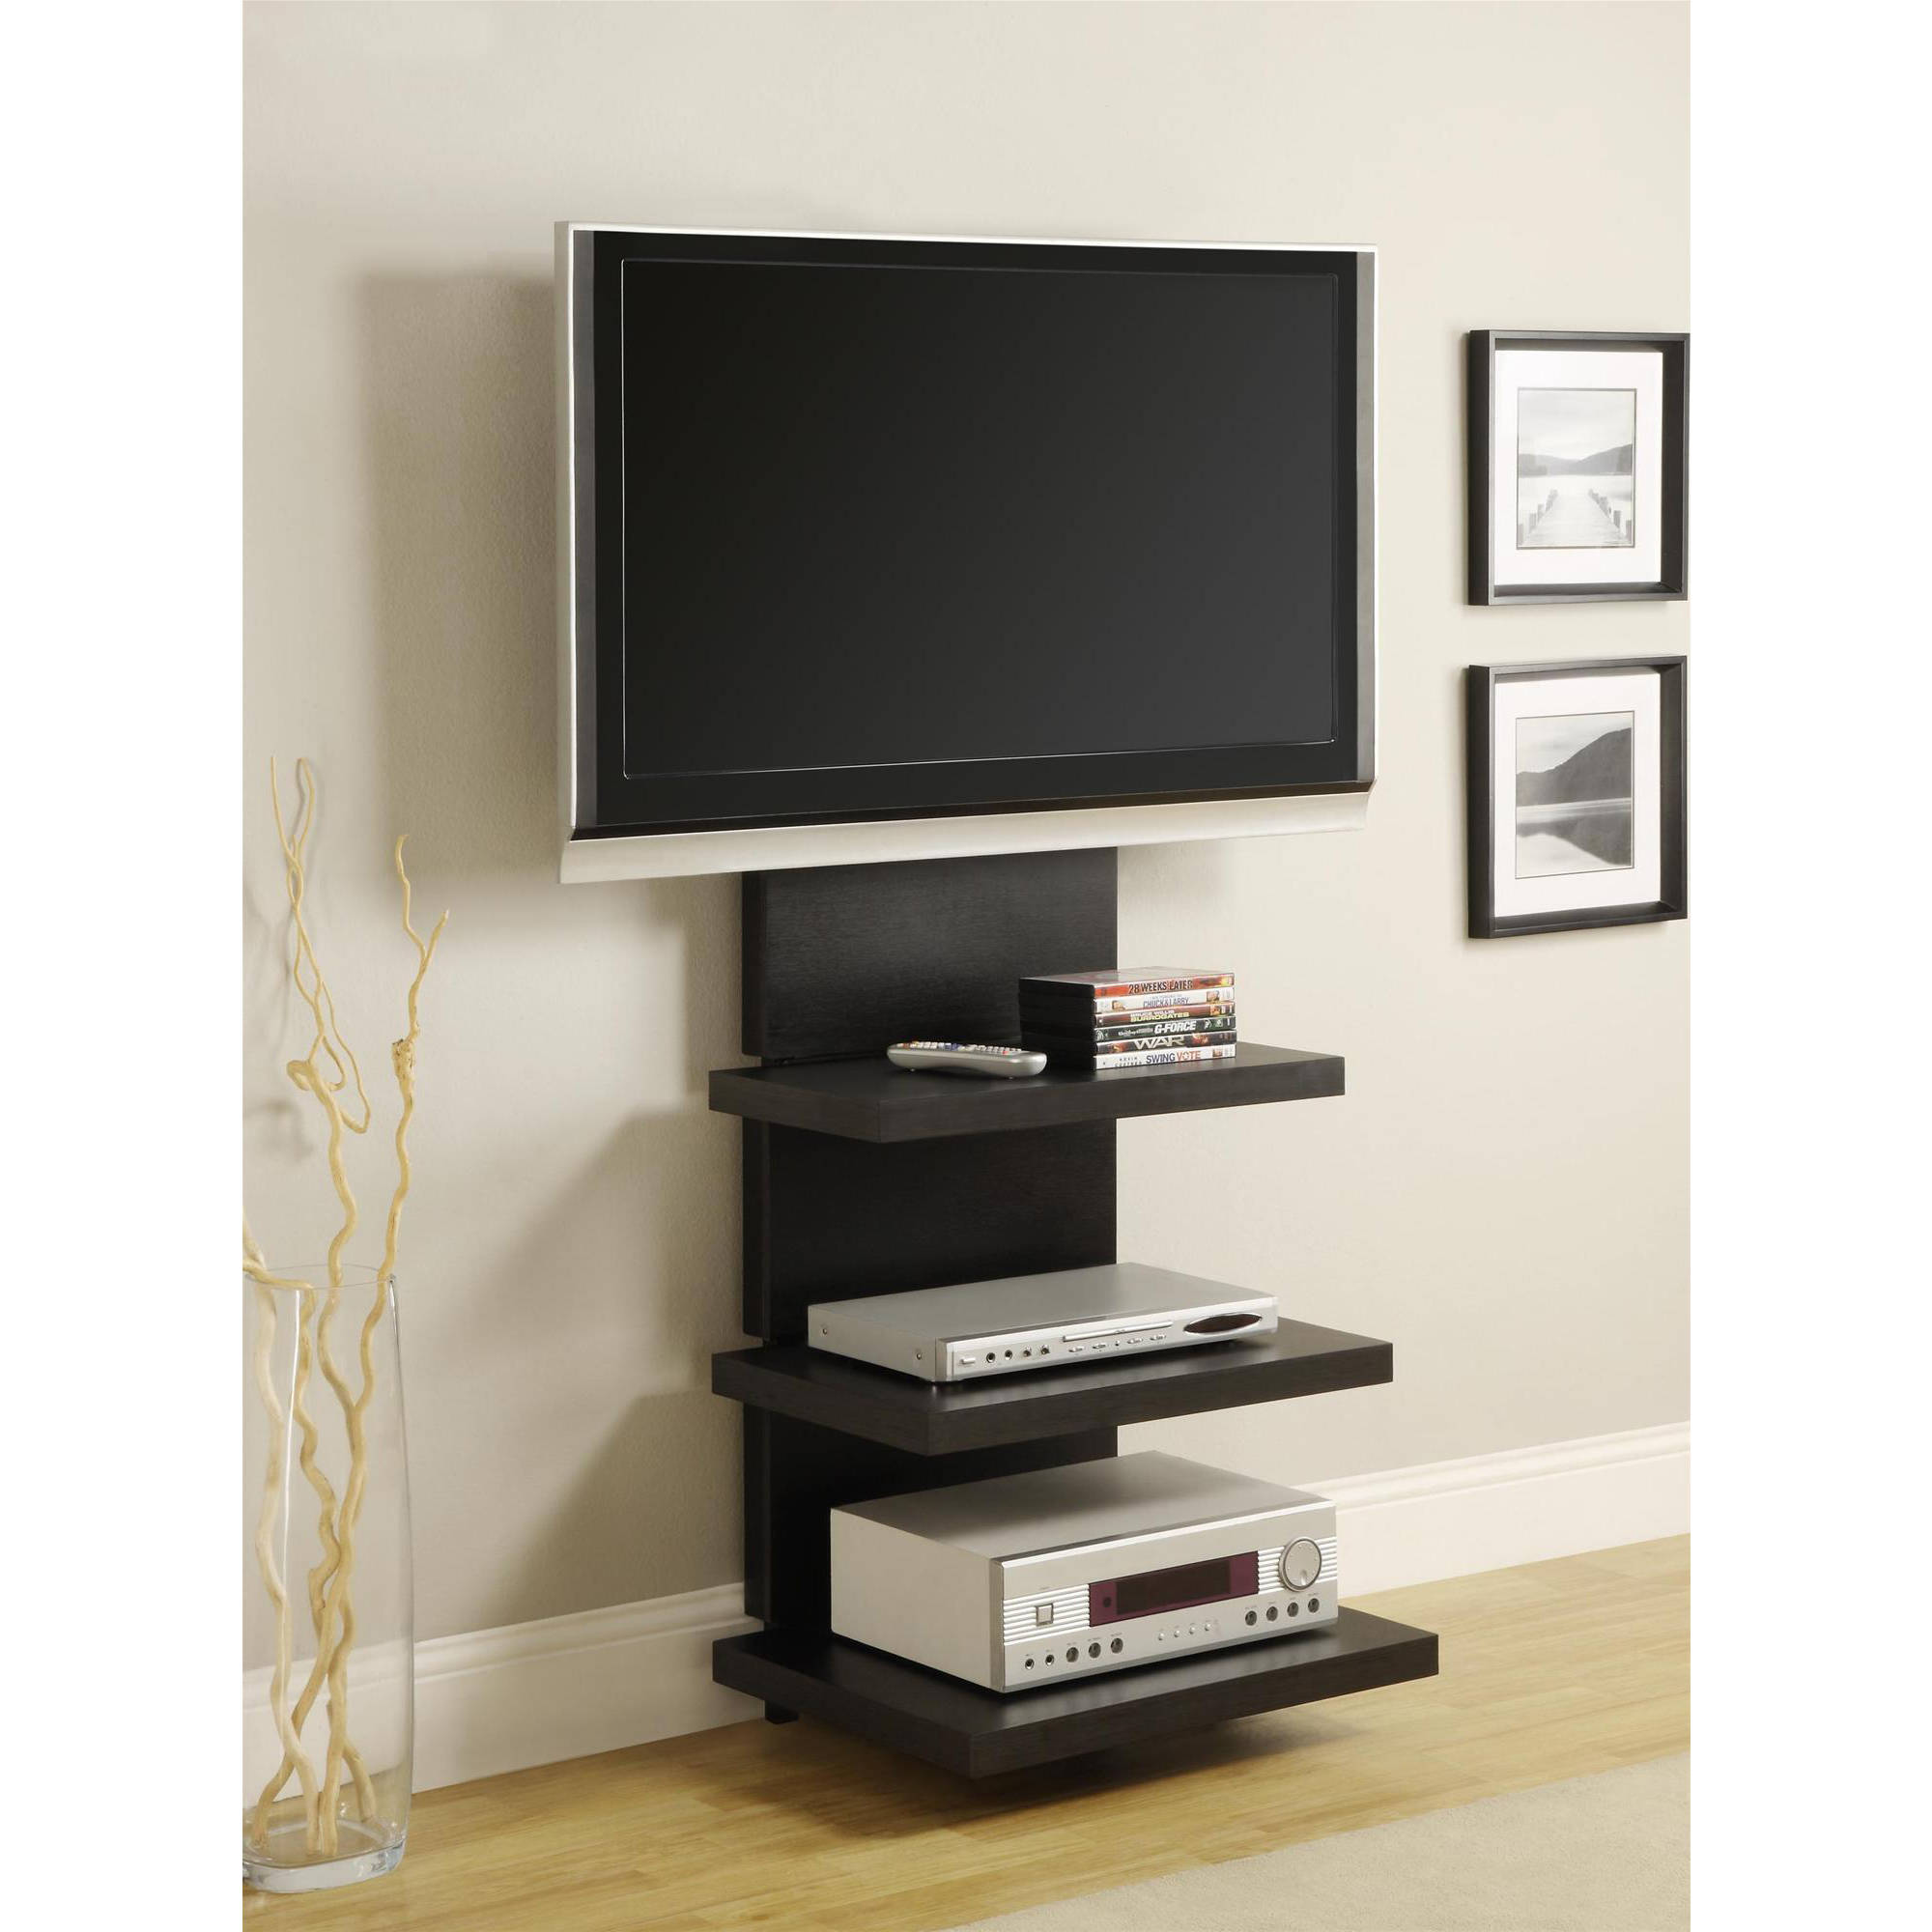 Altra wall mount tv stand with 3 shelves for tvs up to 60 ebay image is loading altra wall mount tv stand with 3 shelves sciox Image collections